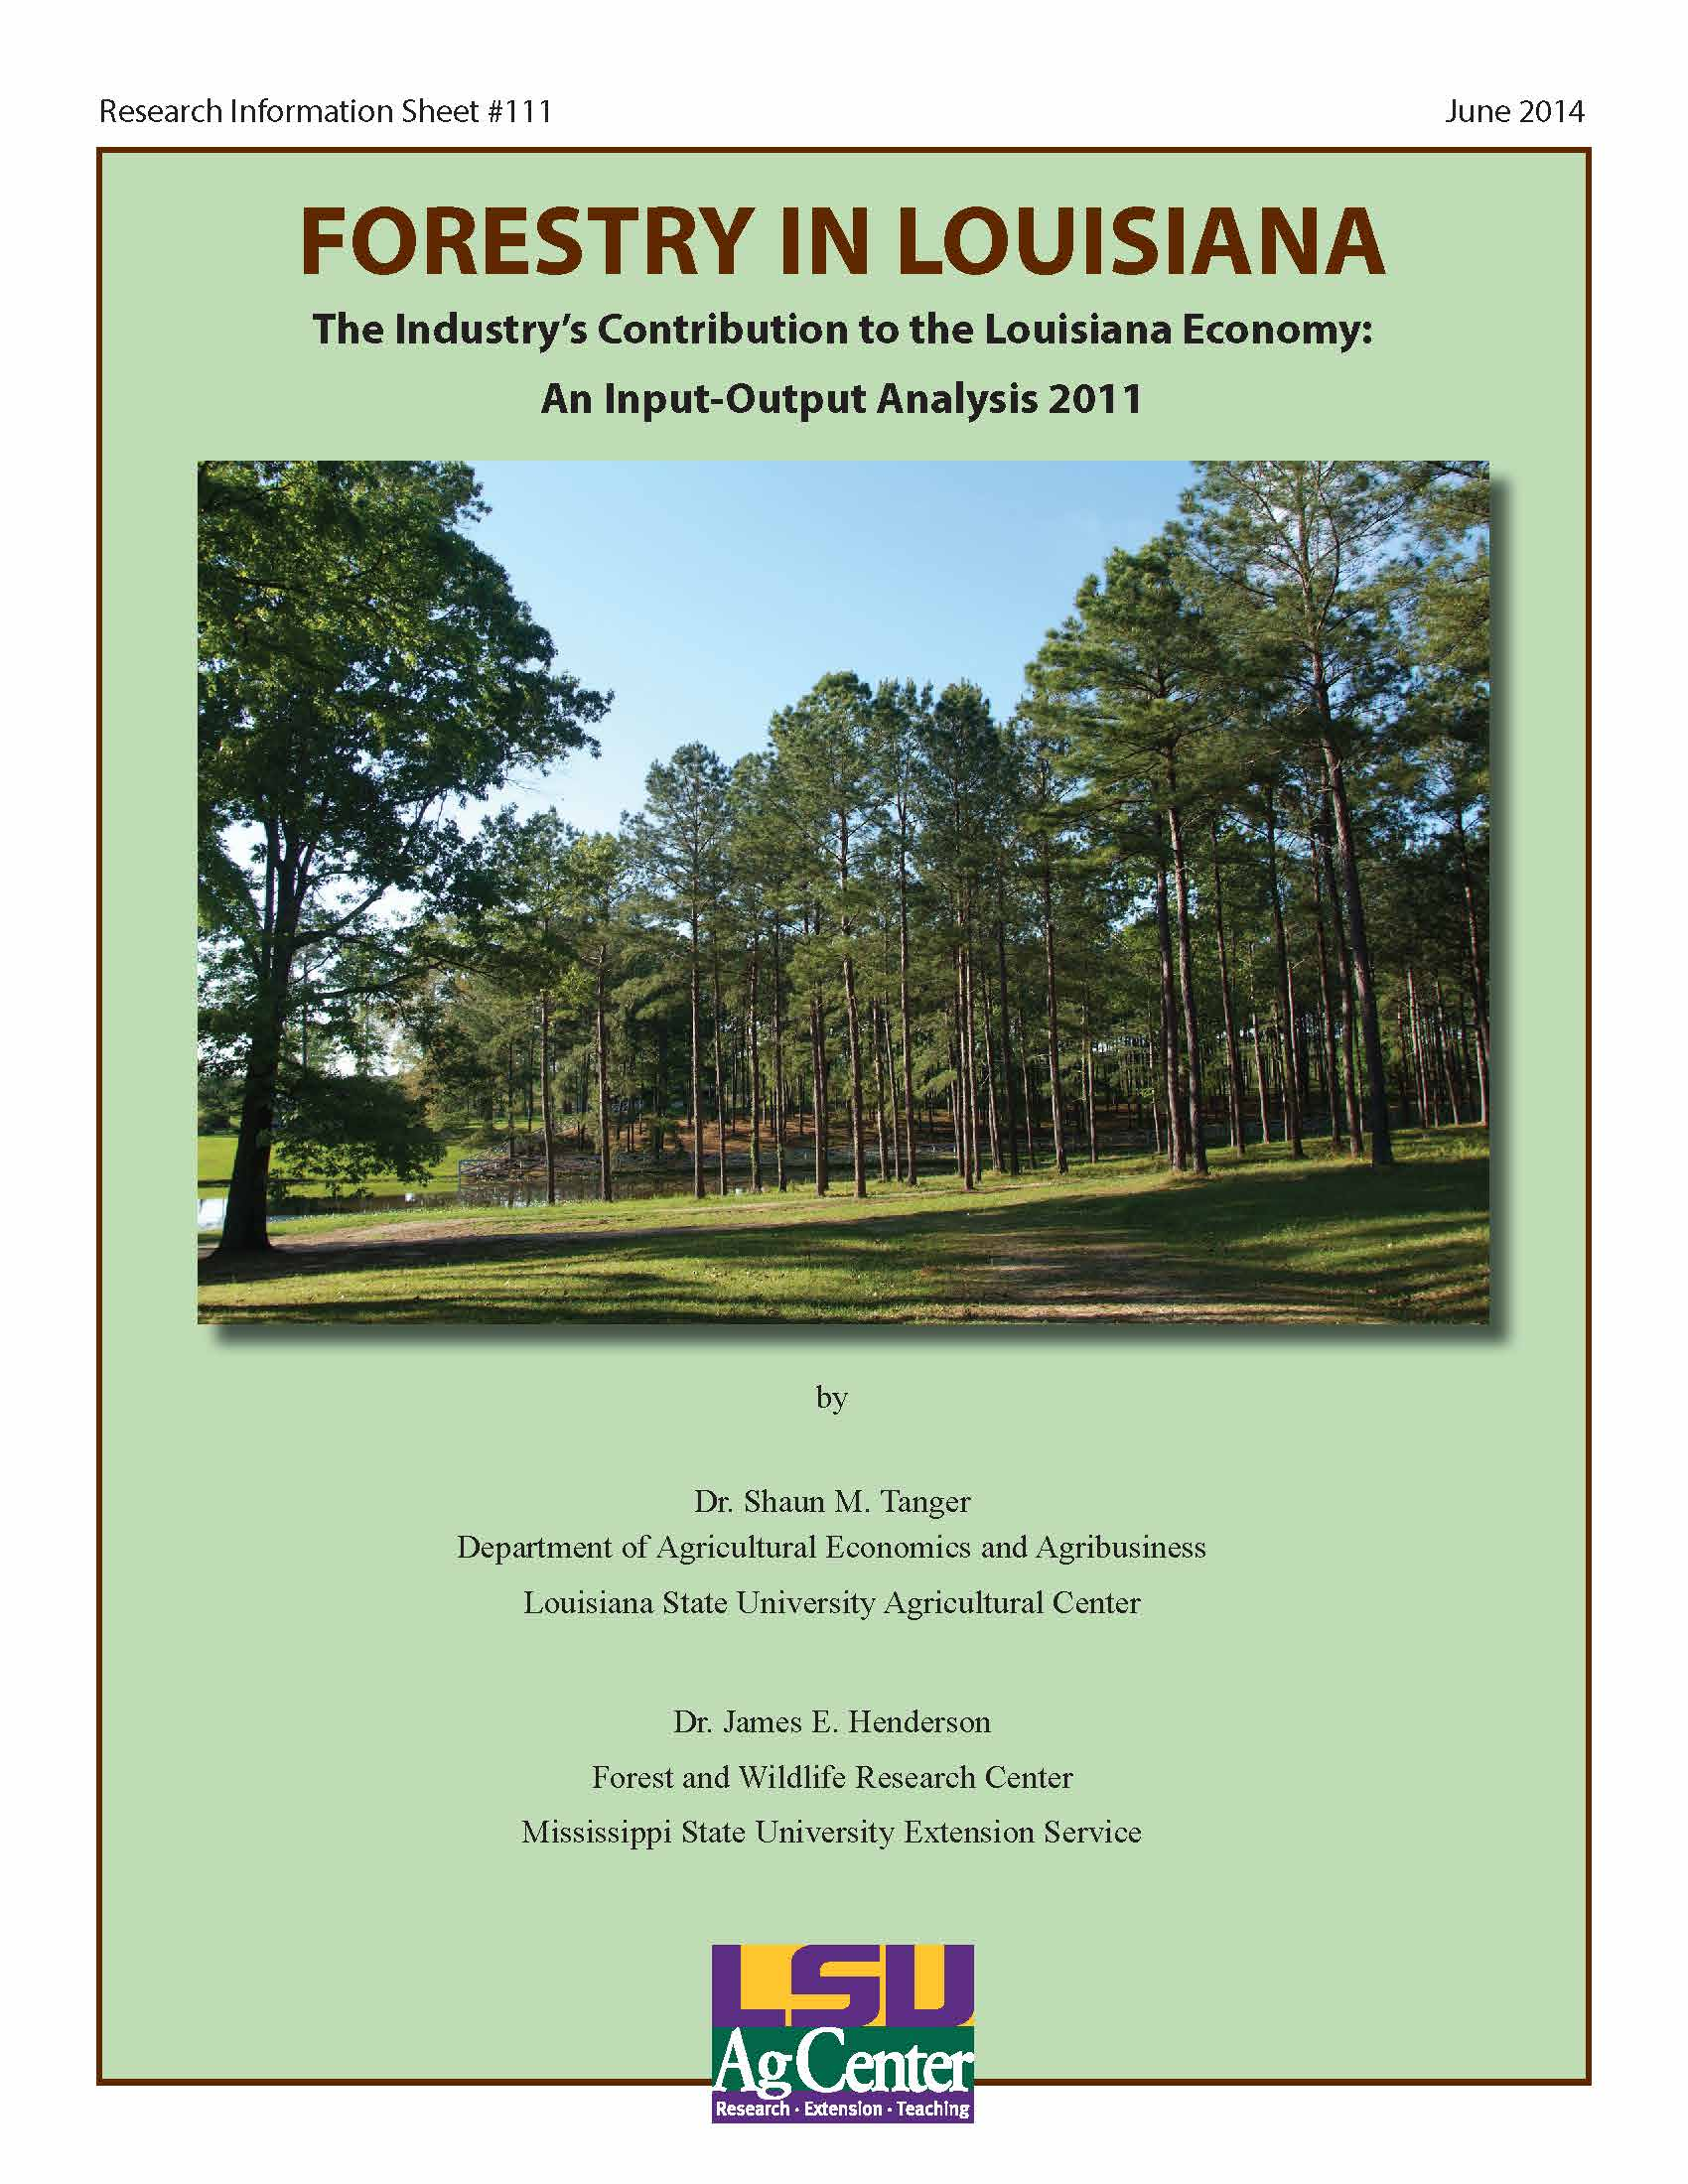 Forestry in Louisiana - The Industry's Contribution to the Louisiana Economy: An Input-Output Analysis 2011